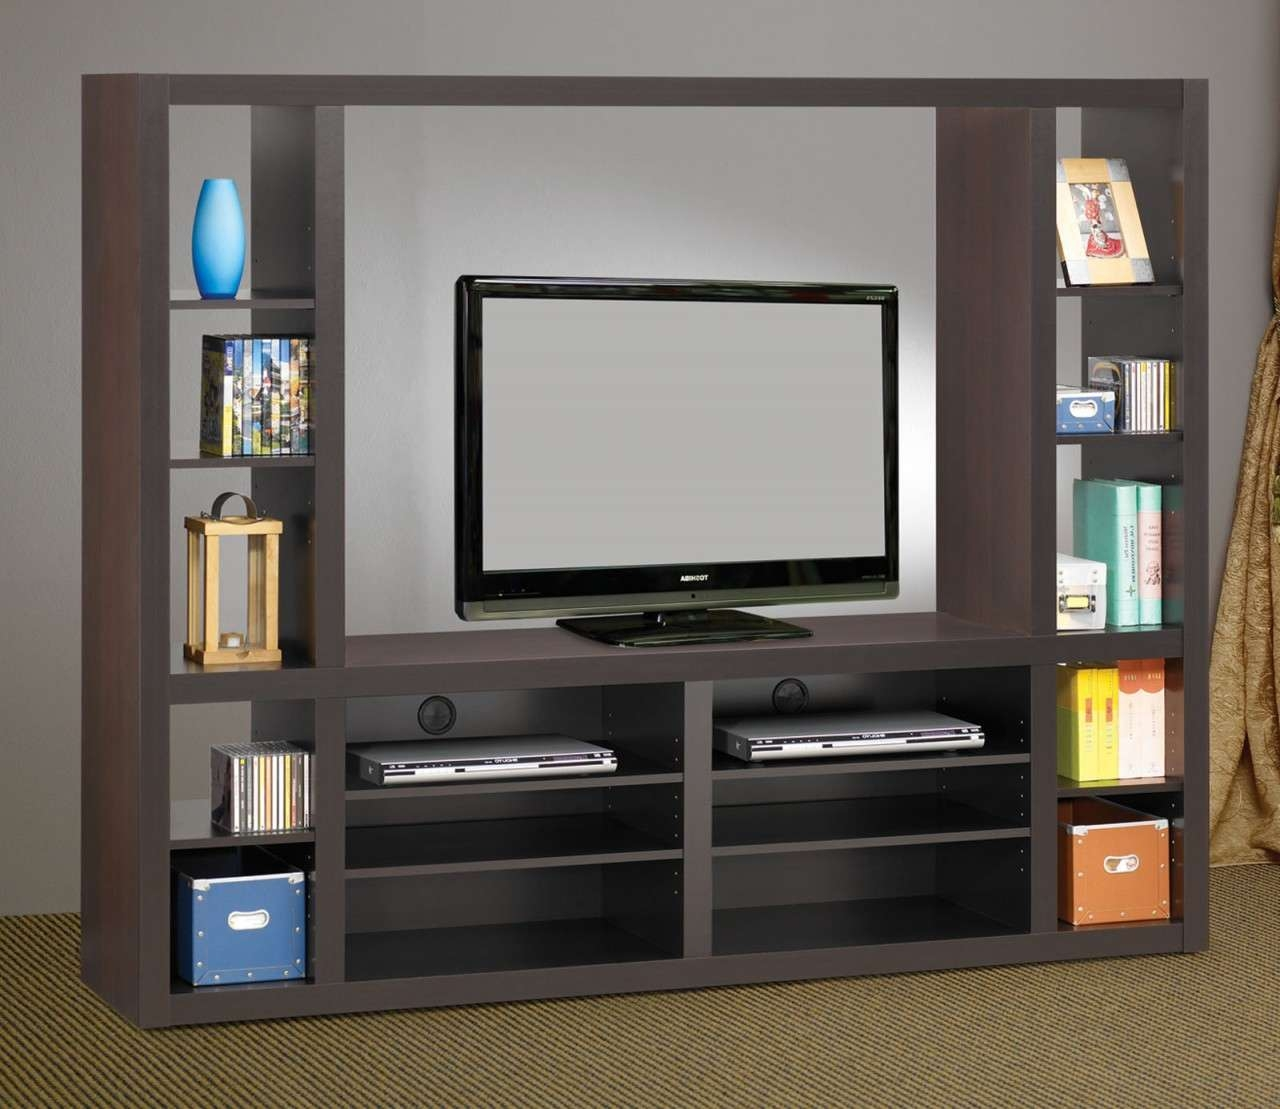 Flat Screen Tv Wall Unit Idea – Wall Units Design Ideas With Contemporary Tv Cabinets For Flat Screens (View 7 of 20)